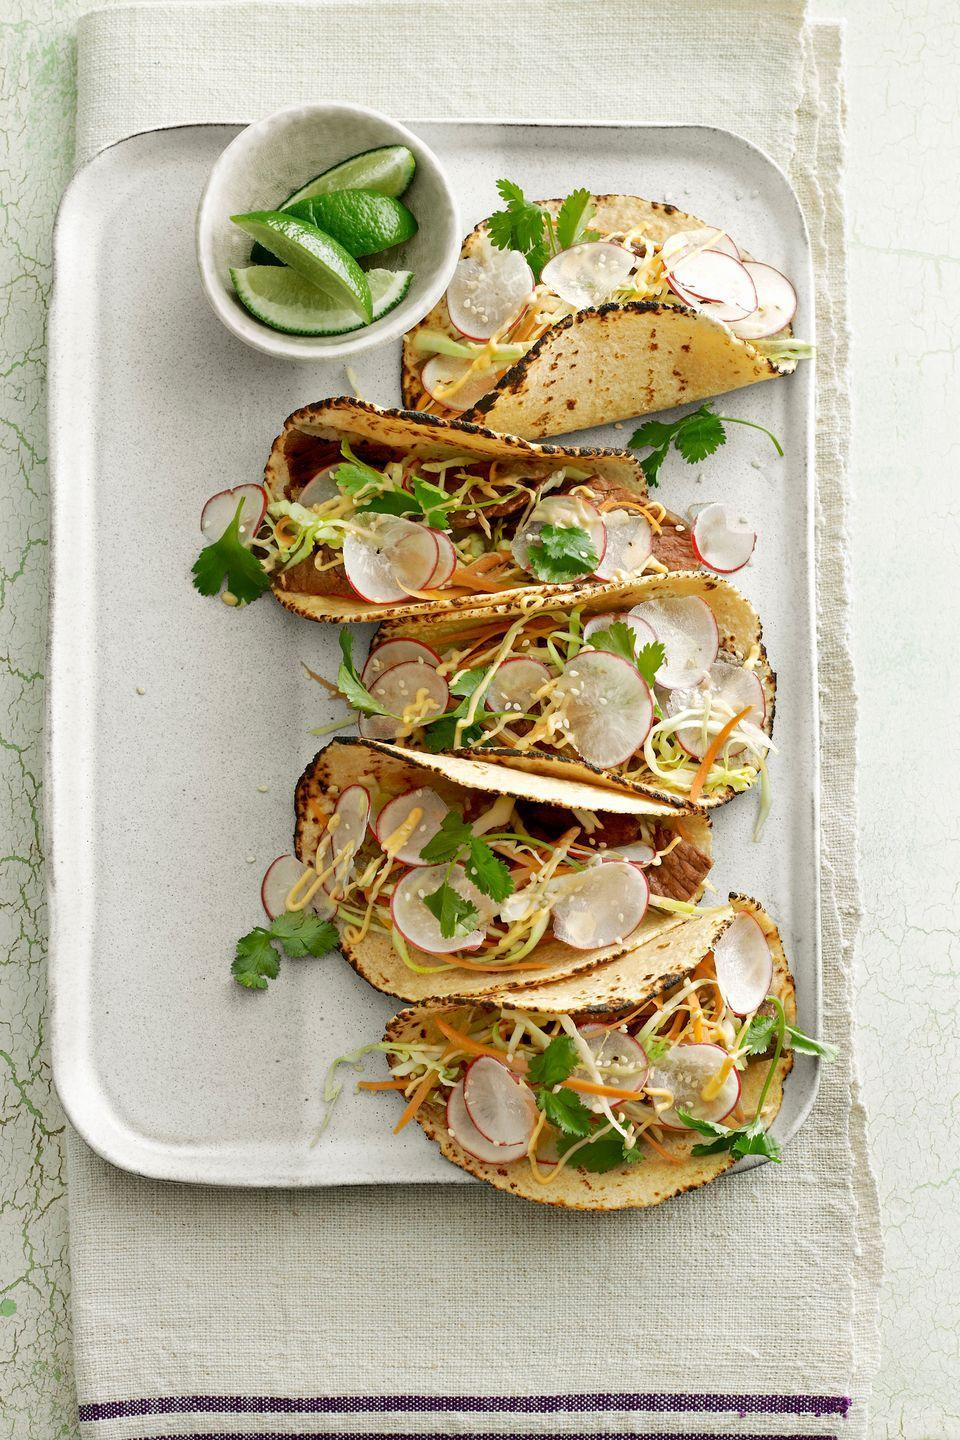 "<p>Try these Thai-inspired tacos for a twist on traditional game-day food.</p><p><strong><a href=""https://www.countryliving.com/food-drinks/recipes/a4169/thai-steak-tacos-recipe-clv0513/"" rel=""nofollow noopener"" target=""_blank"" data-ylk=""slk:Get the recipe"" class=""link rapid-noclick-resp"">Get the recipe</a>.</strong></p><p><a class=""link rapid-noclick-resp"" href=""https://www.amazon.com/Victoria-Skillet-Seasoned-Flaxseed-Certified/dp/B01726HD72/?tag=syn-yahoo-20&ascsubtag=%5Bartid%7C10063.g.35089489%5Bsrc%7Cyahoo-us"" rel=""nofollow noopener"" target=""_blank"" data-ylk=""slk:SHOP SKILLETS"">SHOP SKILLETS</a></p>"